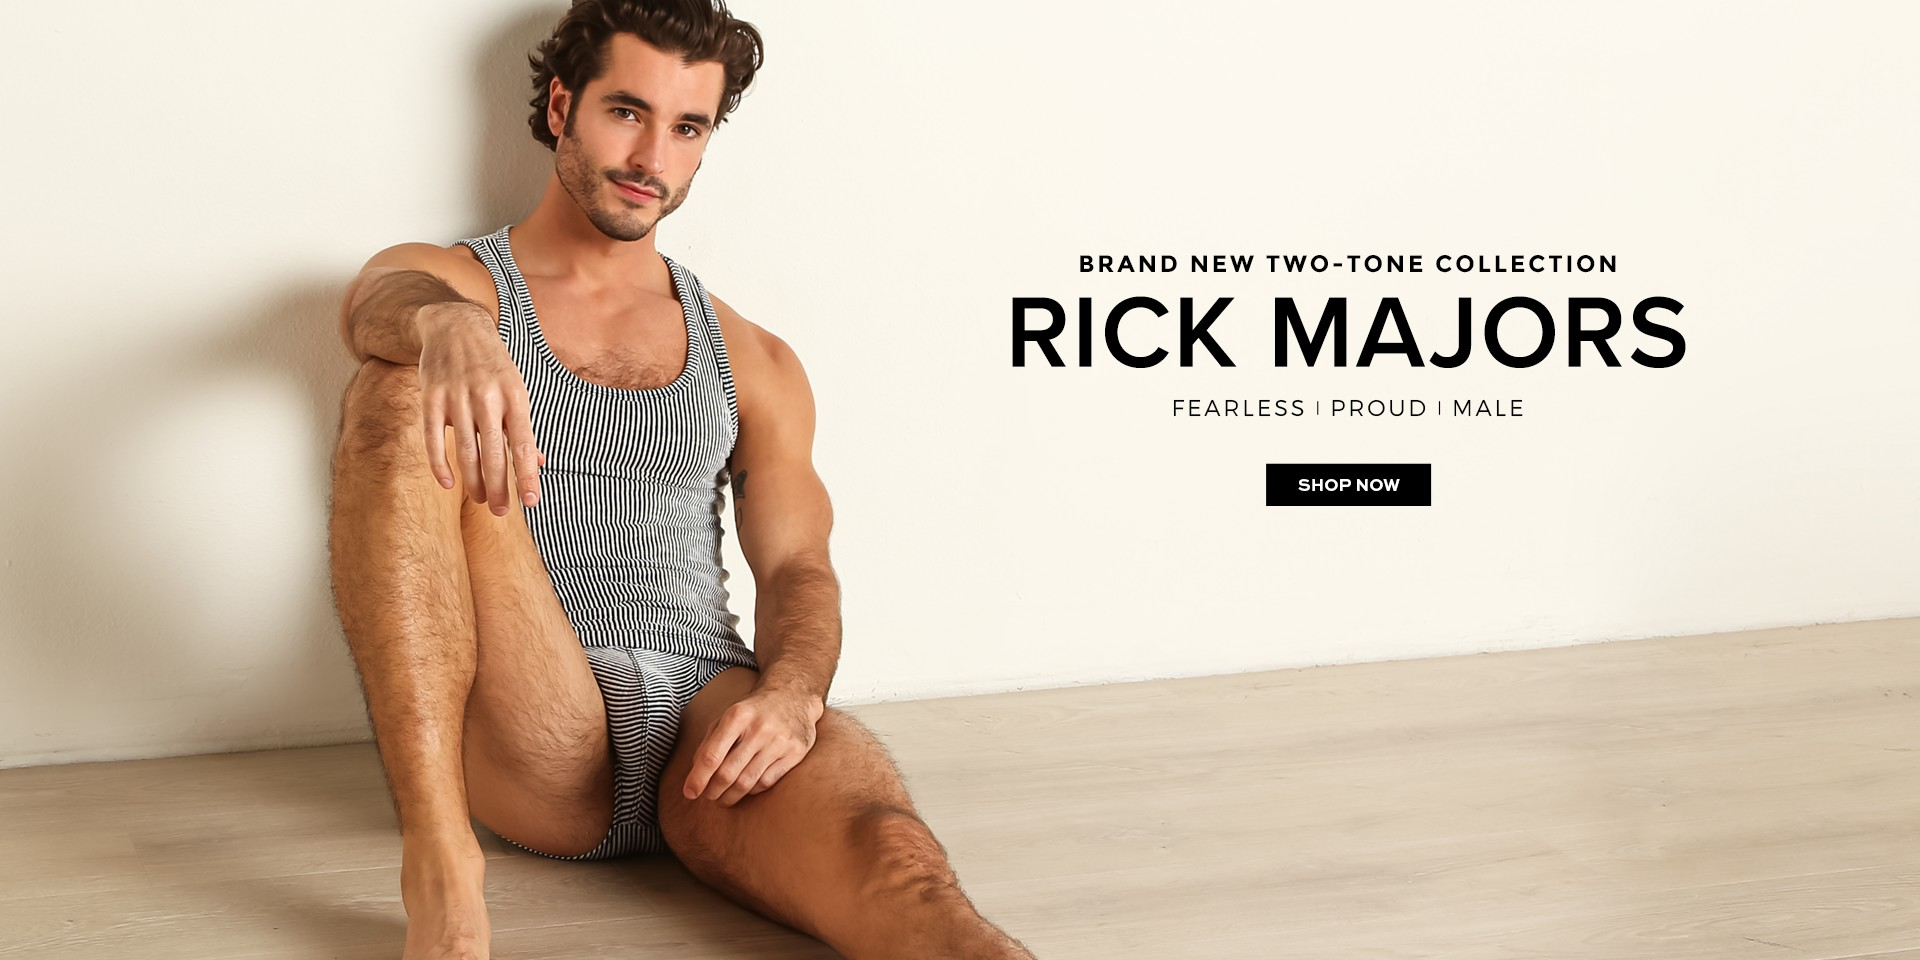 Male model in Rick Majors underwear